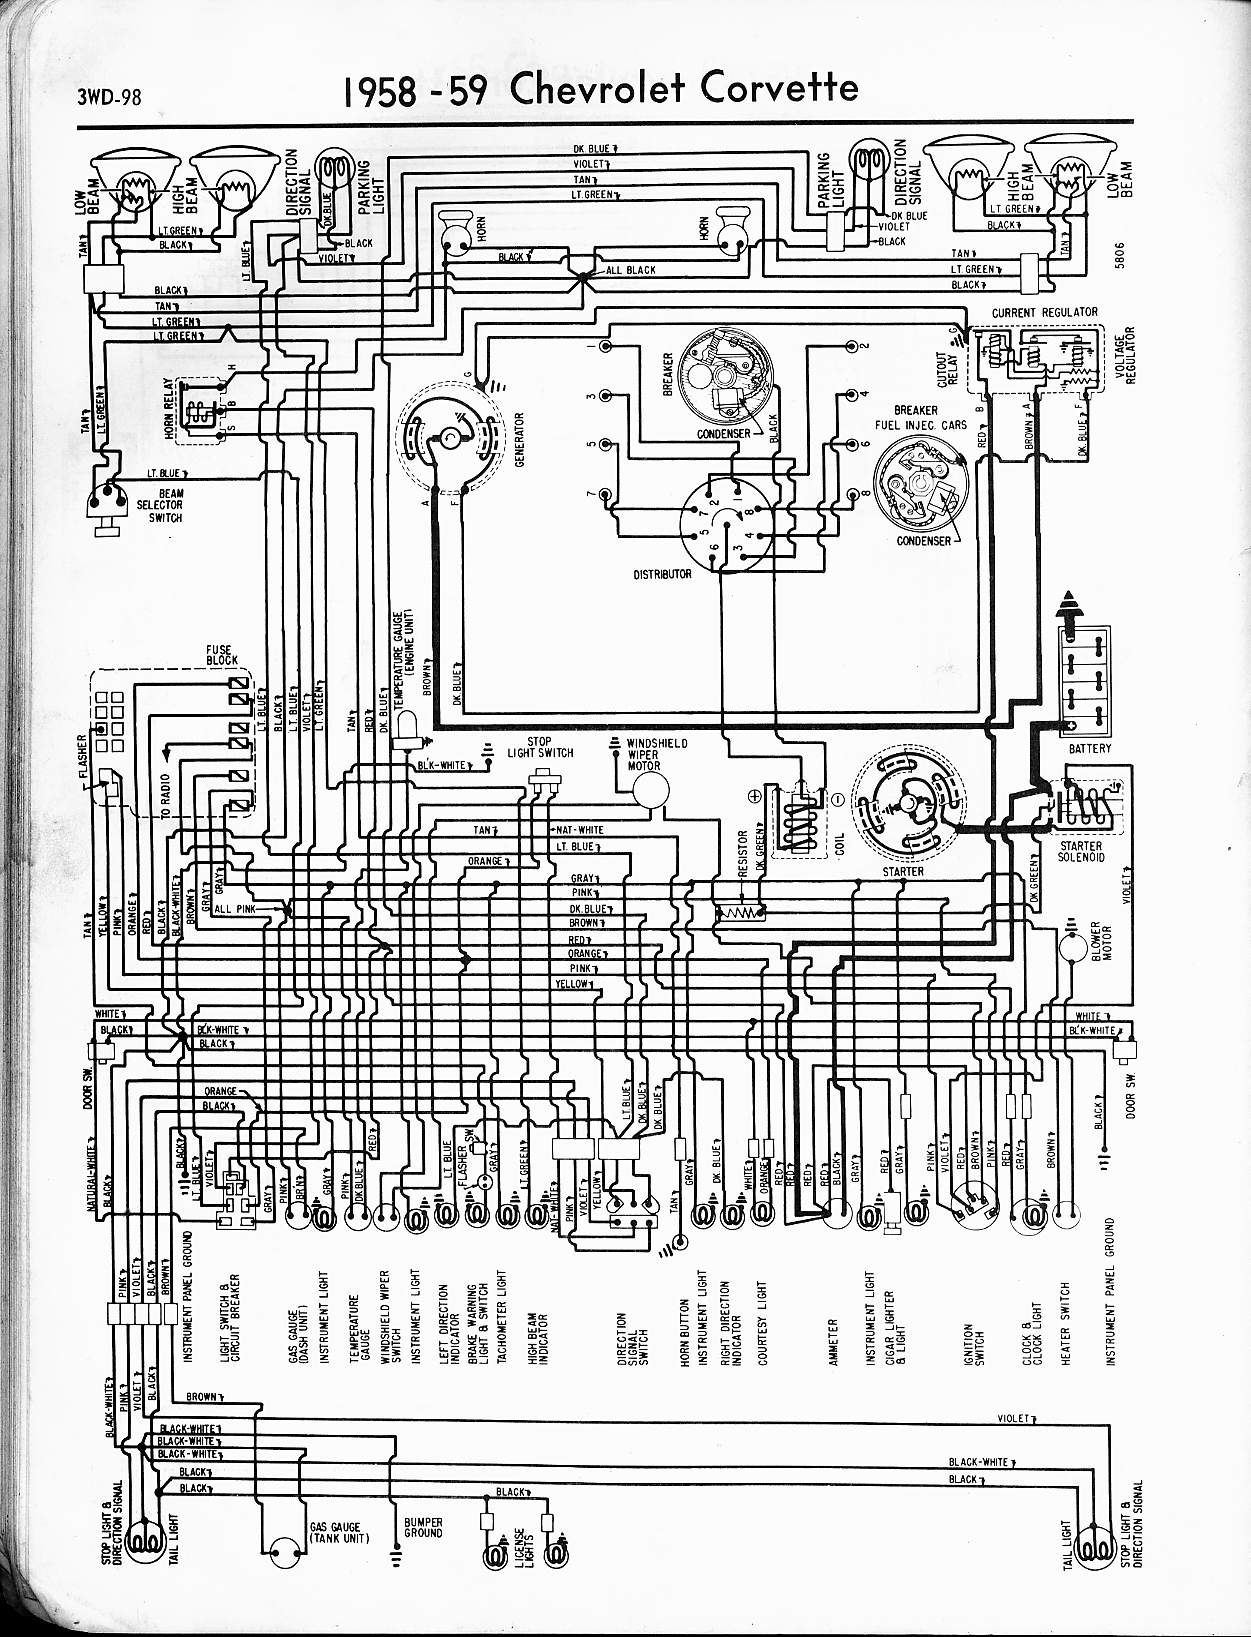 1965 Impala Ignition Wiring Diagram Diagrams Schema Chevy 57 65 1966